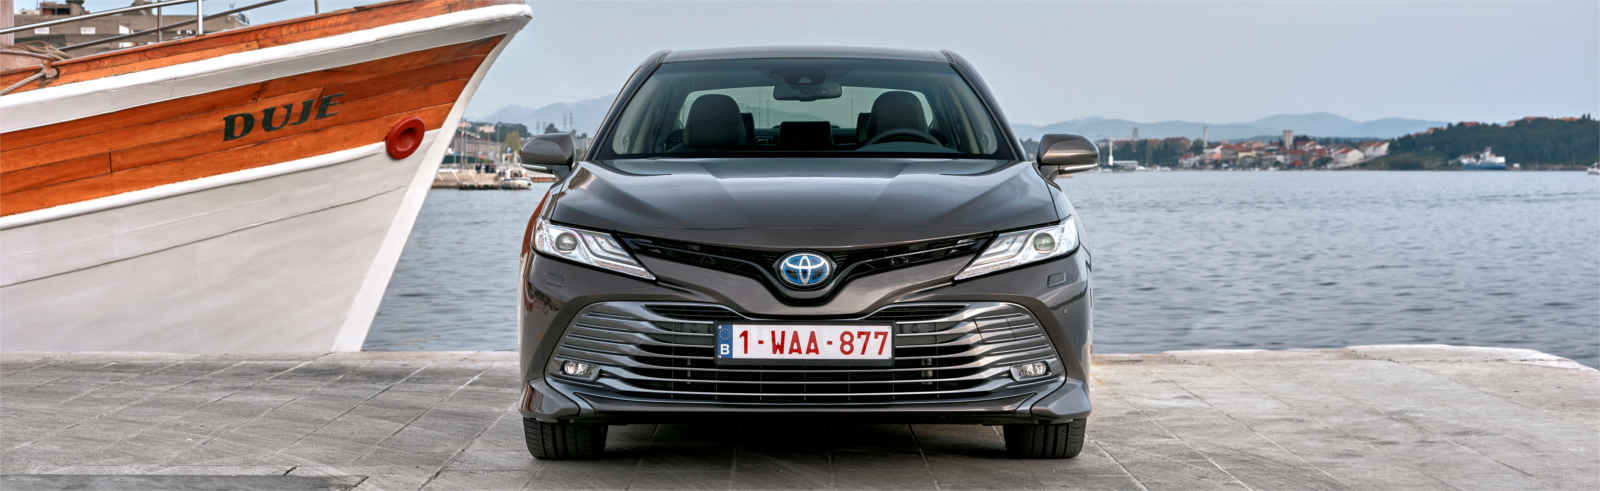 toyota camry frontal